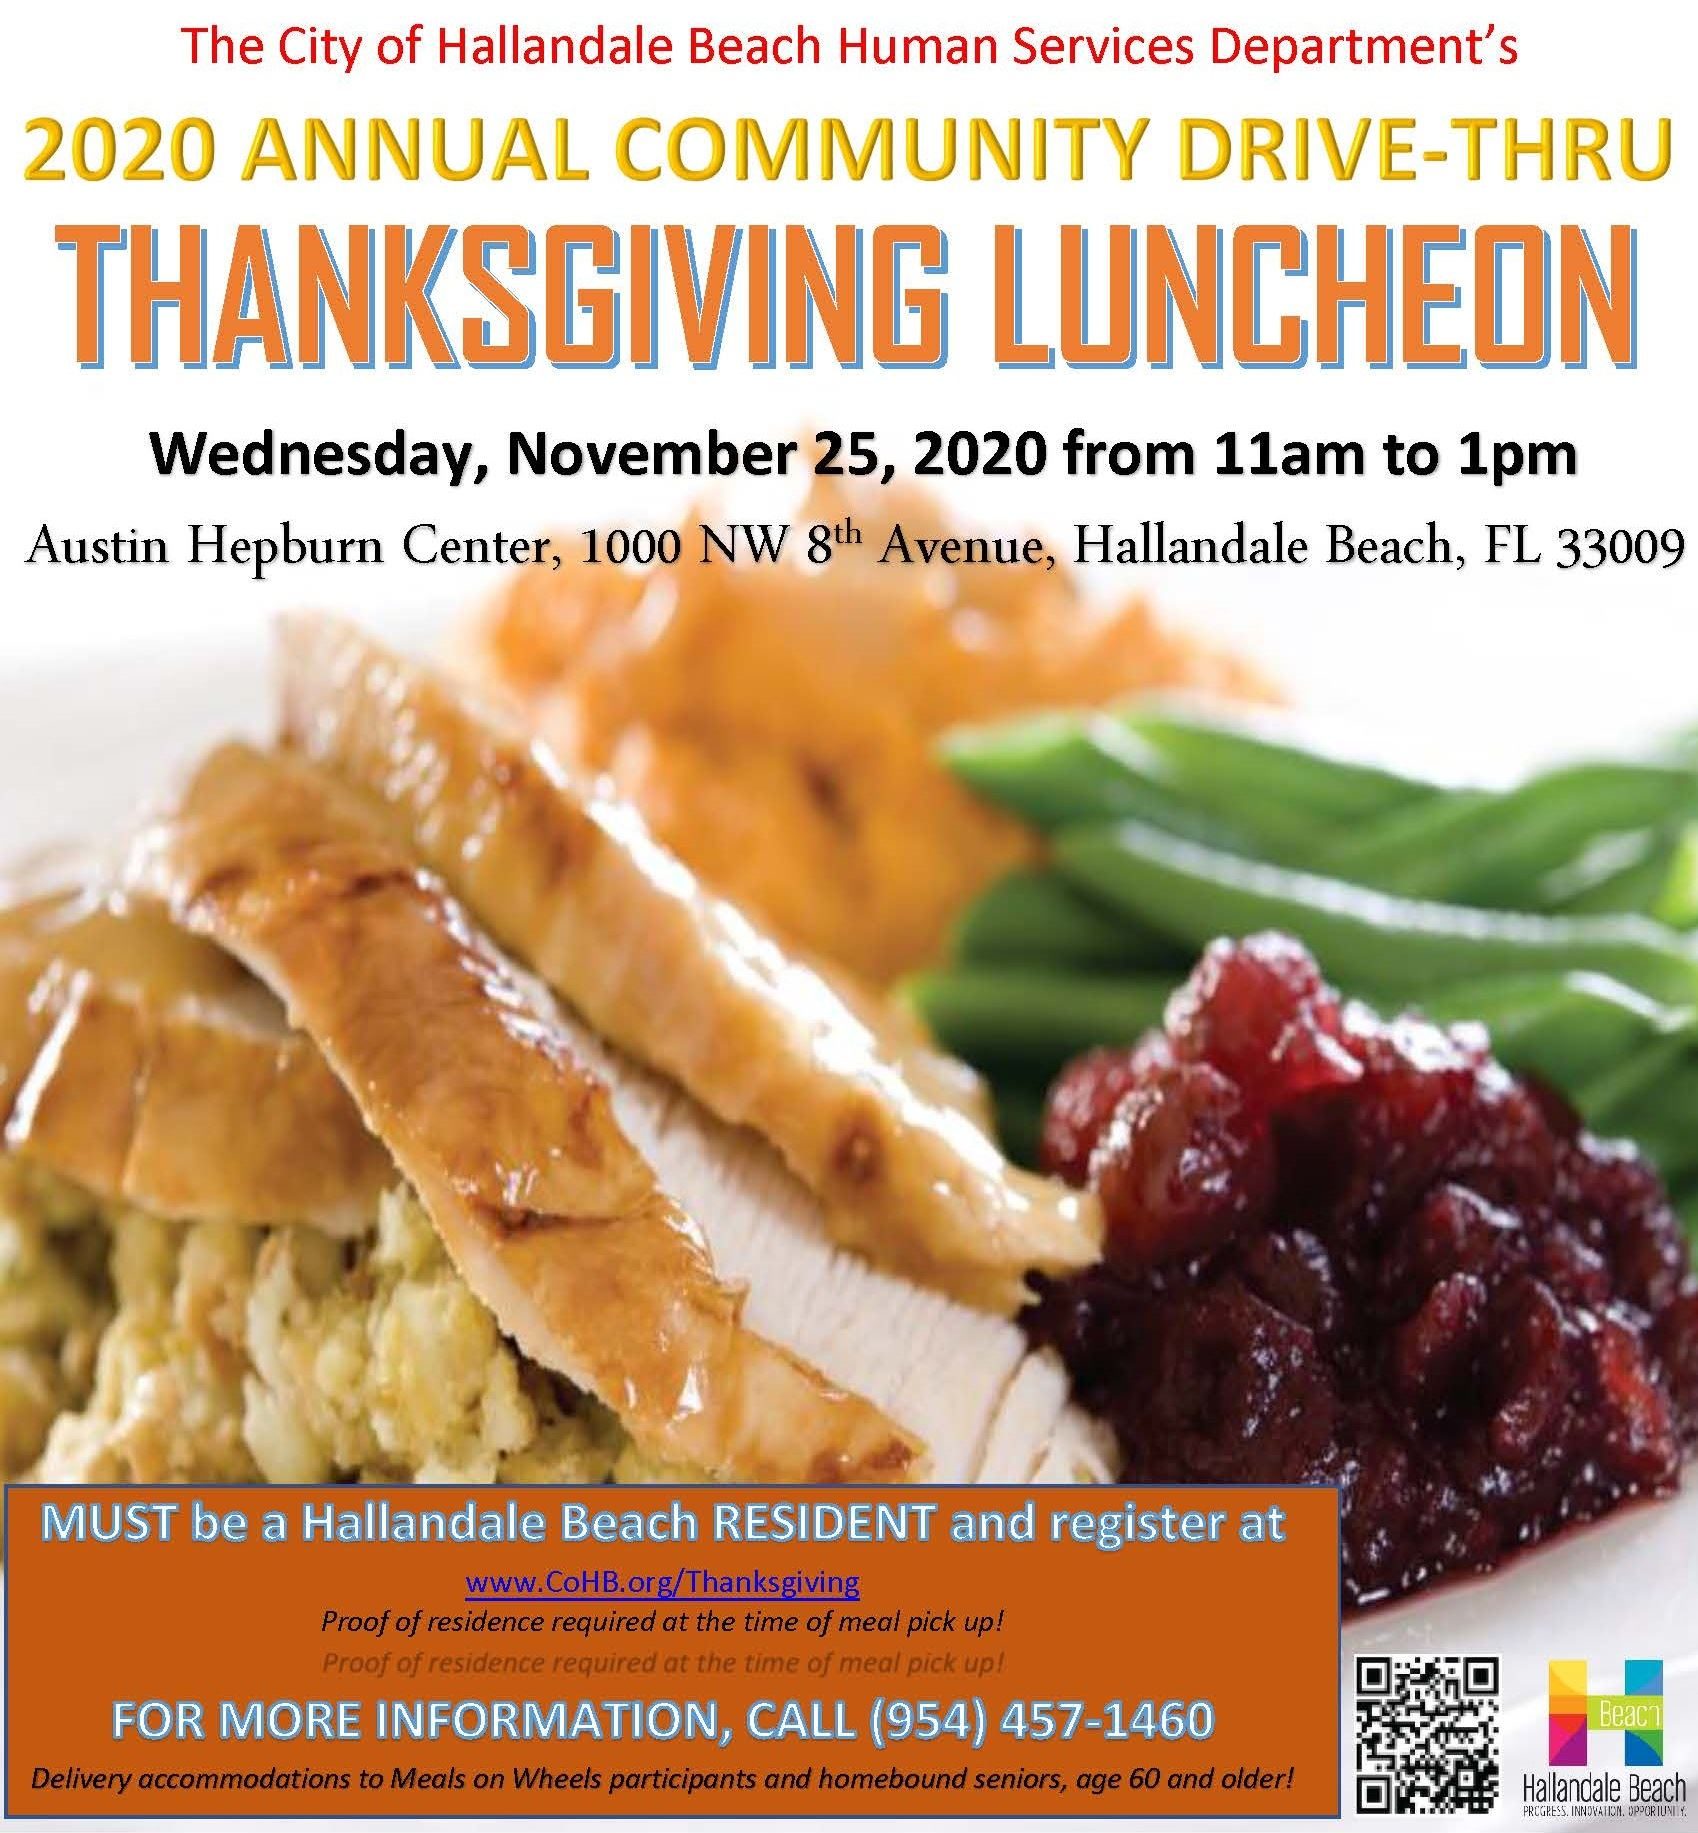 2020 Thanksgiving Luncheon Program